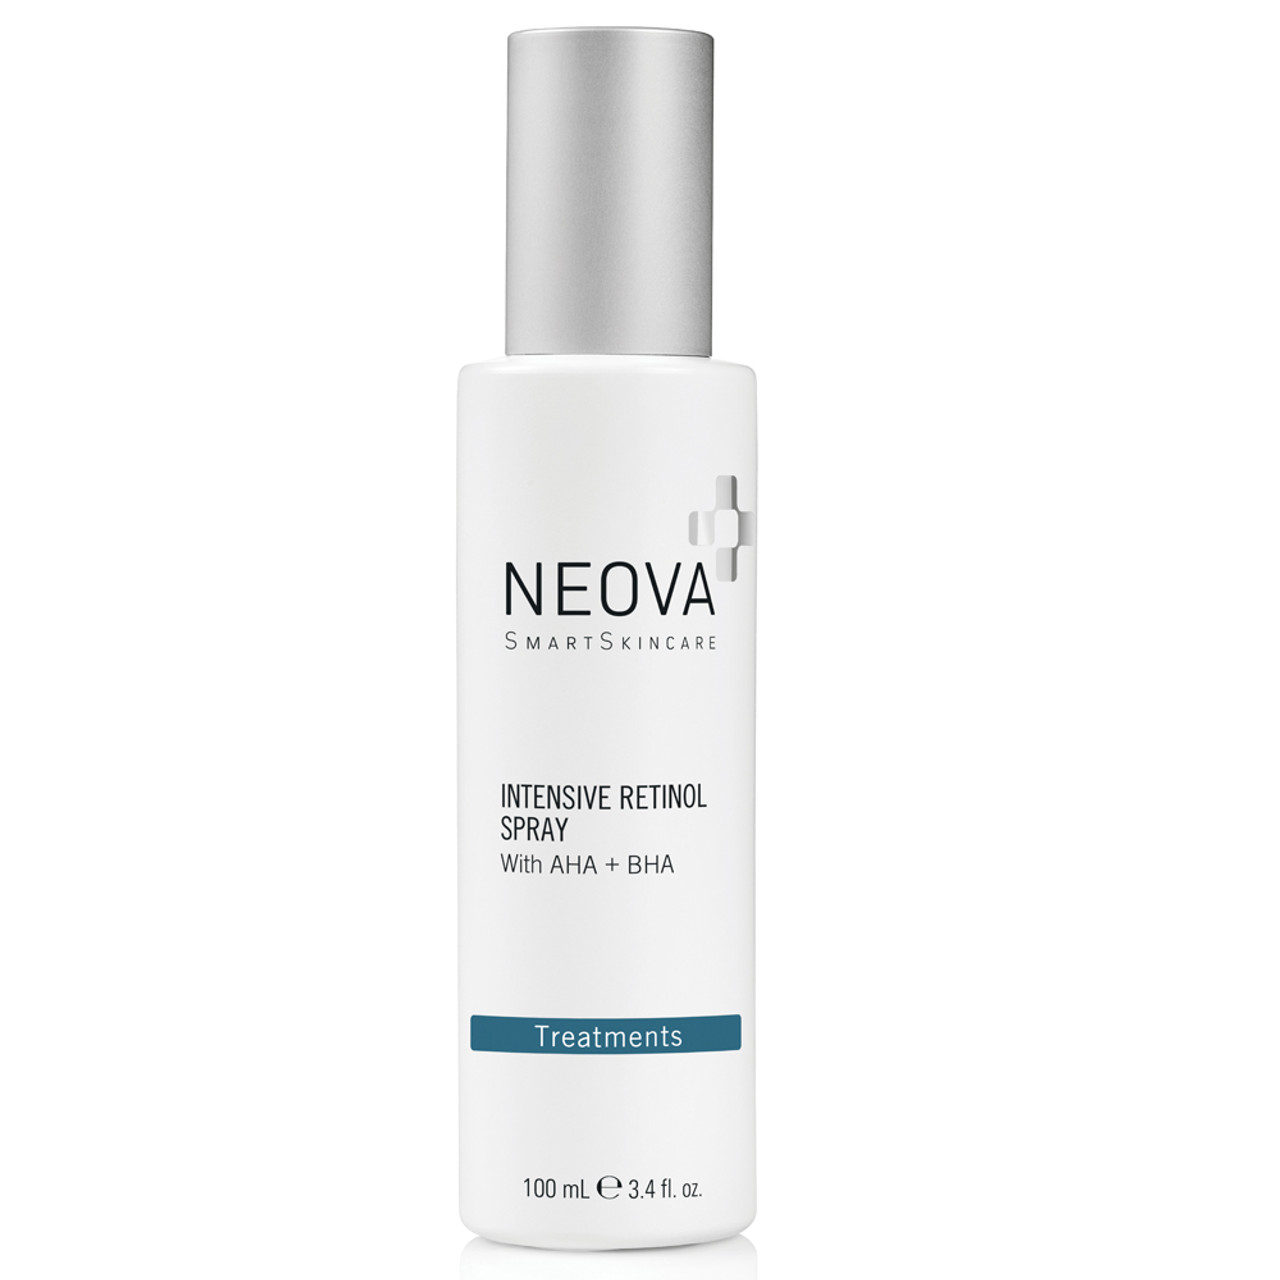 Neova Intensive Retinol Spray